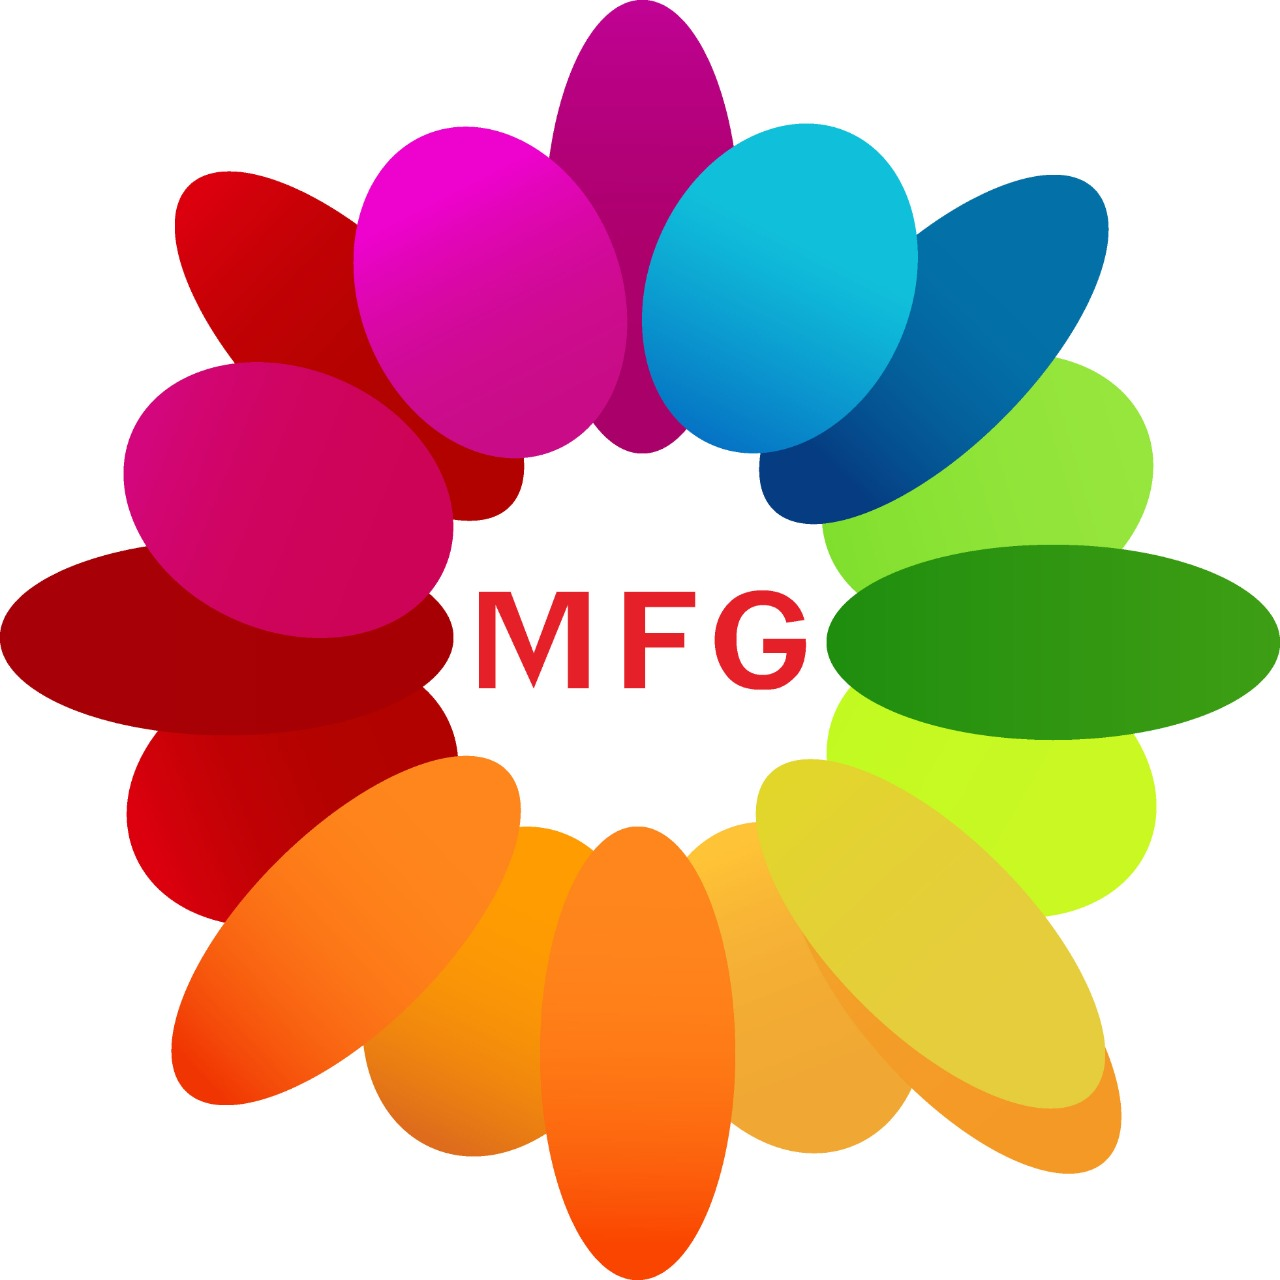 1 kg pineapple fresh cream premium quality cake with box of celebrtion chocolates with 1 feet height teddy bear